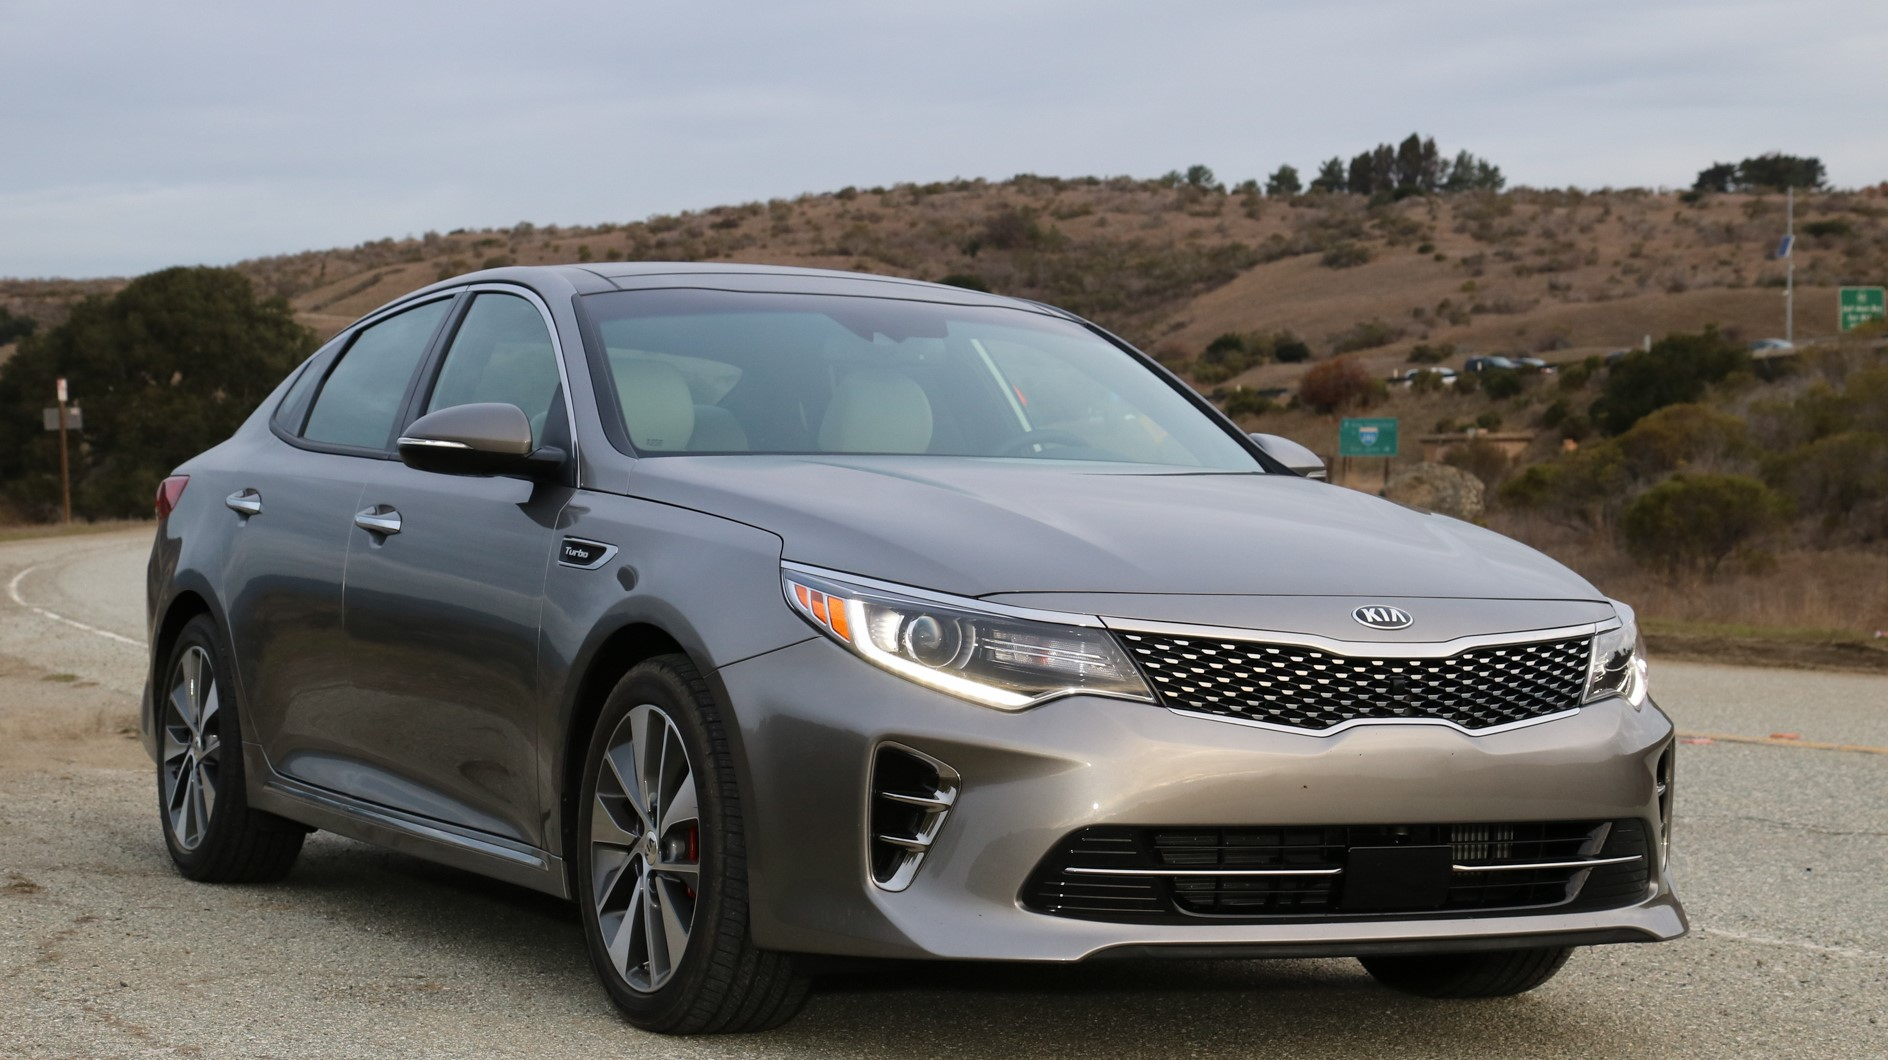 Picture of CarNextDoor's 2015 Kia Optima